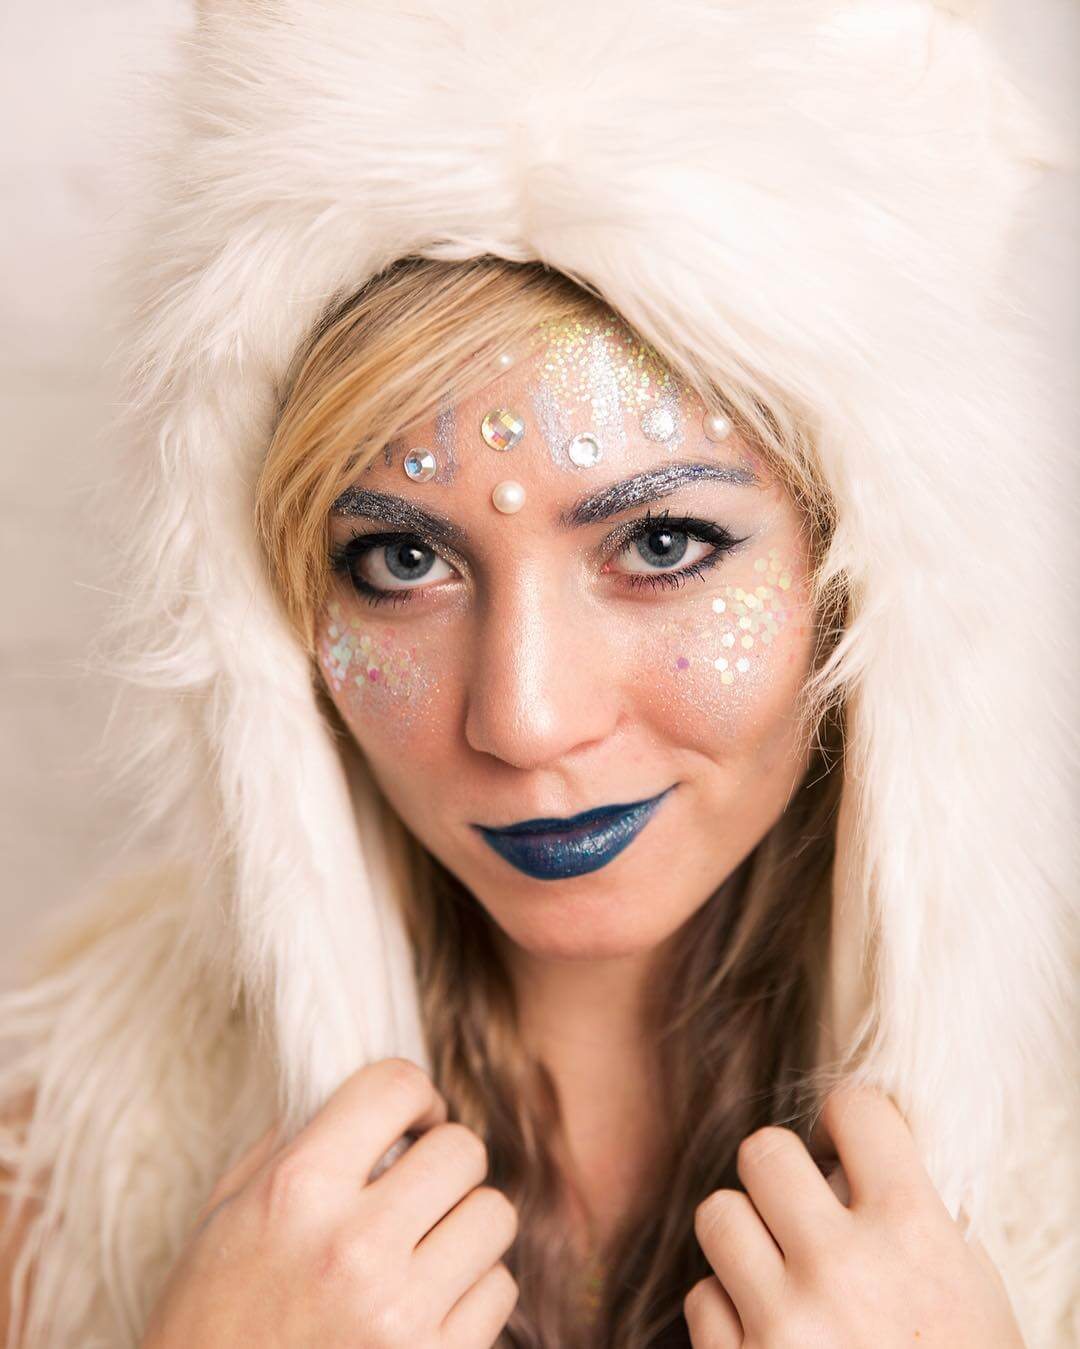 Costume Wear Rave Makeup (1)